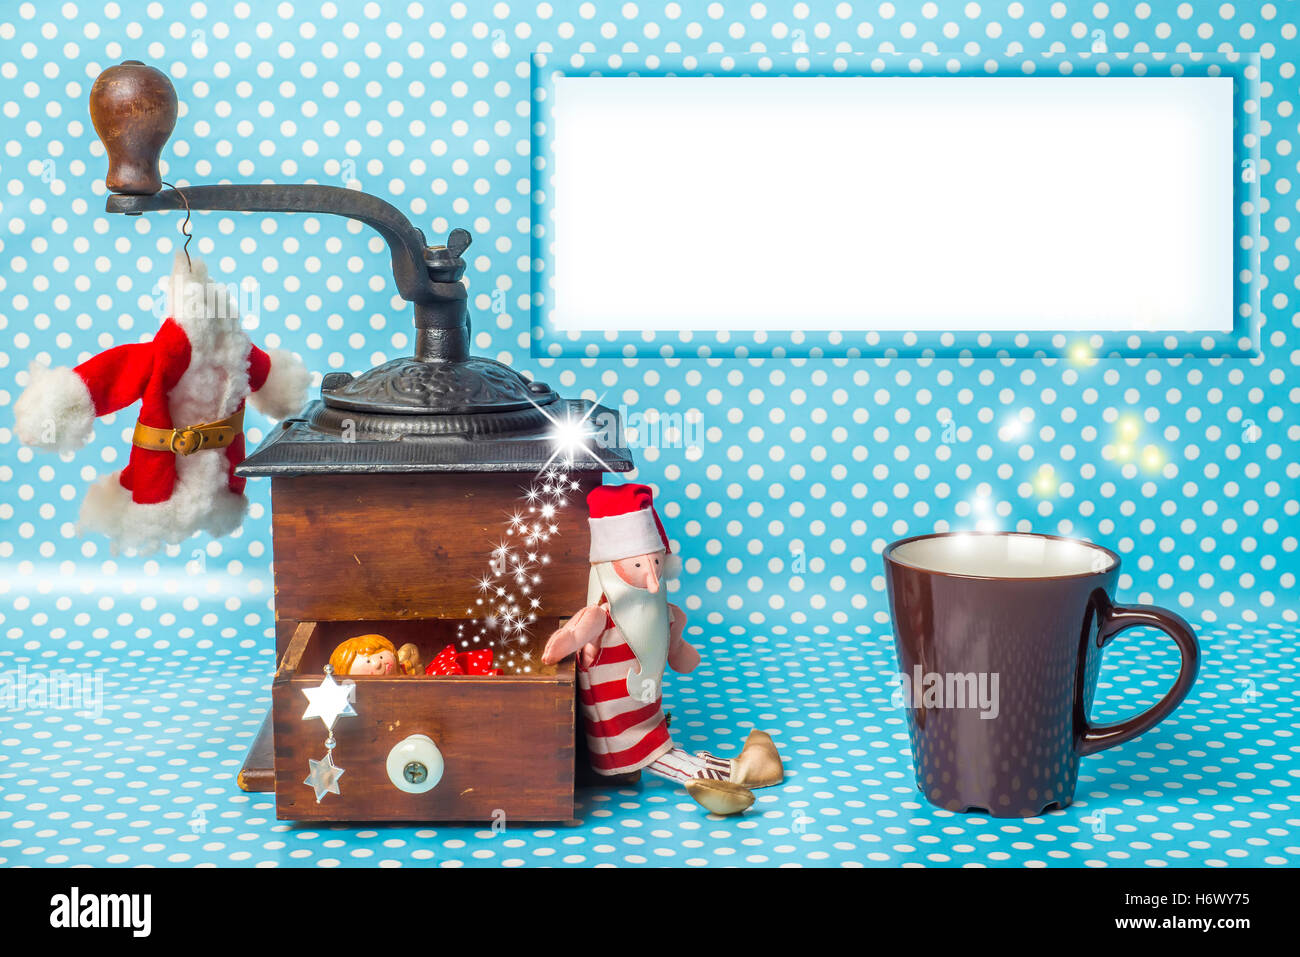 Christmas empty frame greeting card, vintage coffee grinder, cup of coffee Santa toy and Christmas decorations with - Stock Image